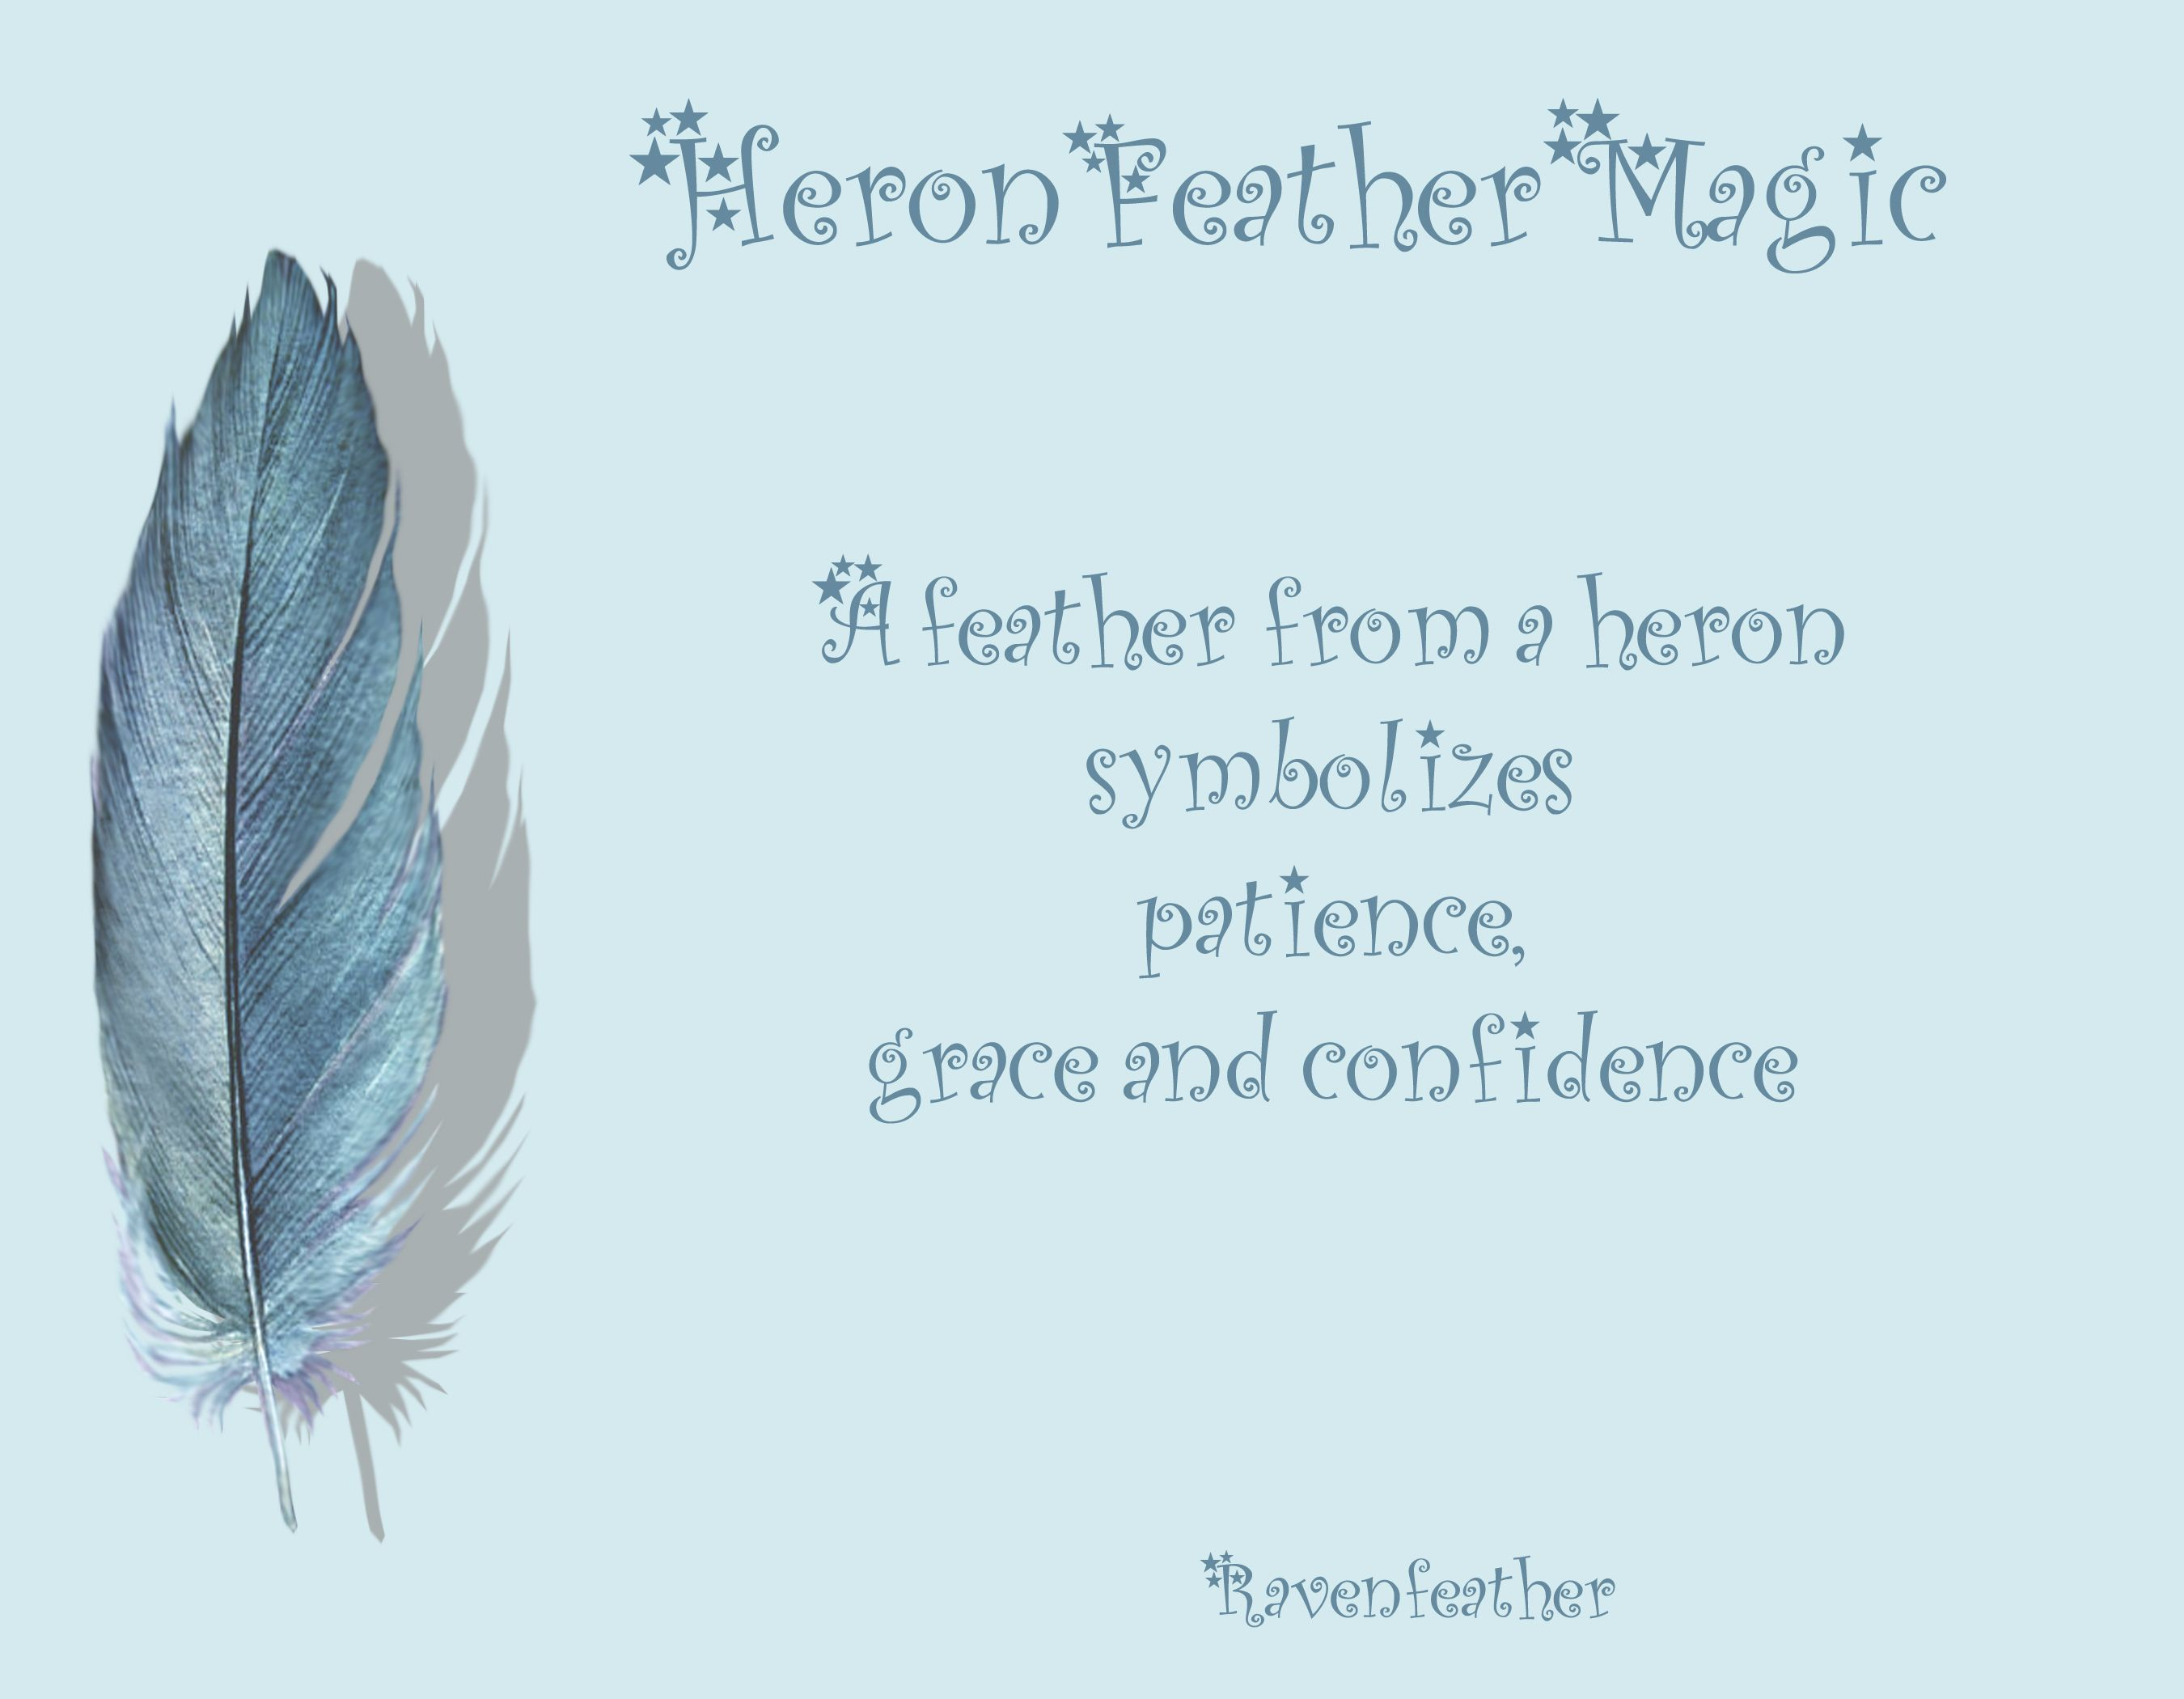 Heron feather magic pinned by the mystics emporium on etsy heron feather magic pinned by the mystics emporium on etsy buycottarizona Gallery